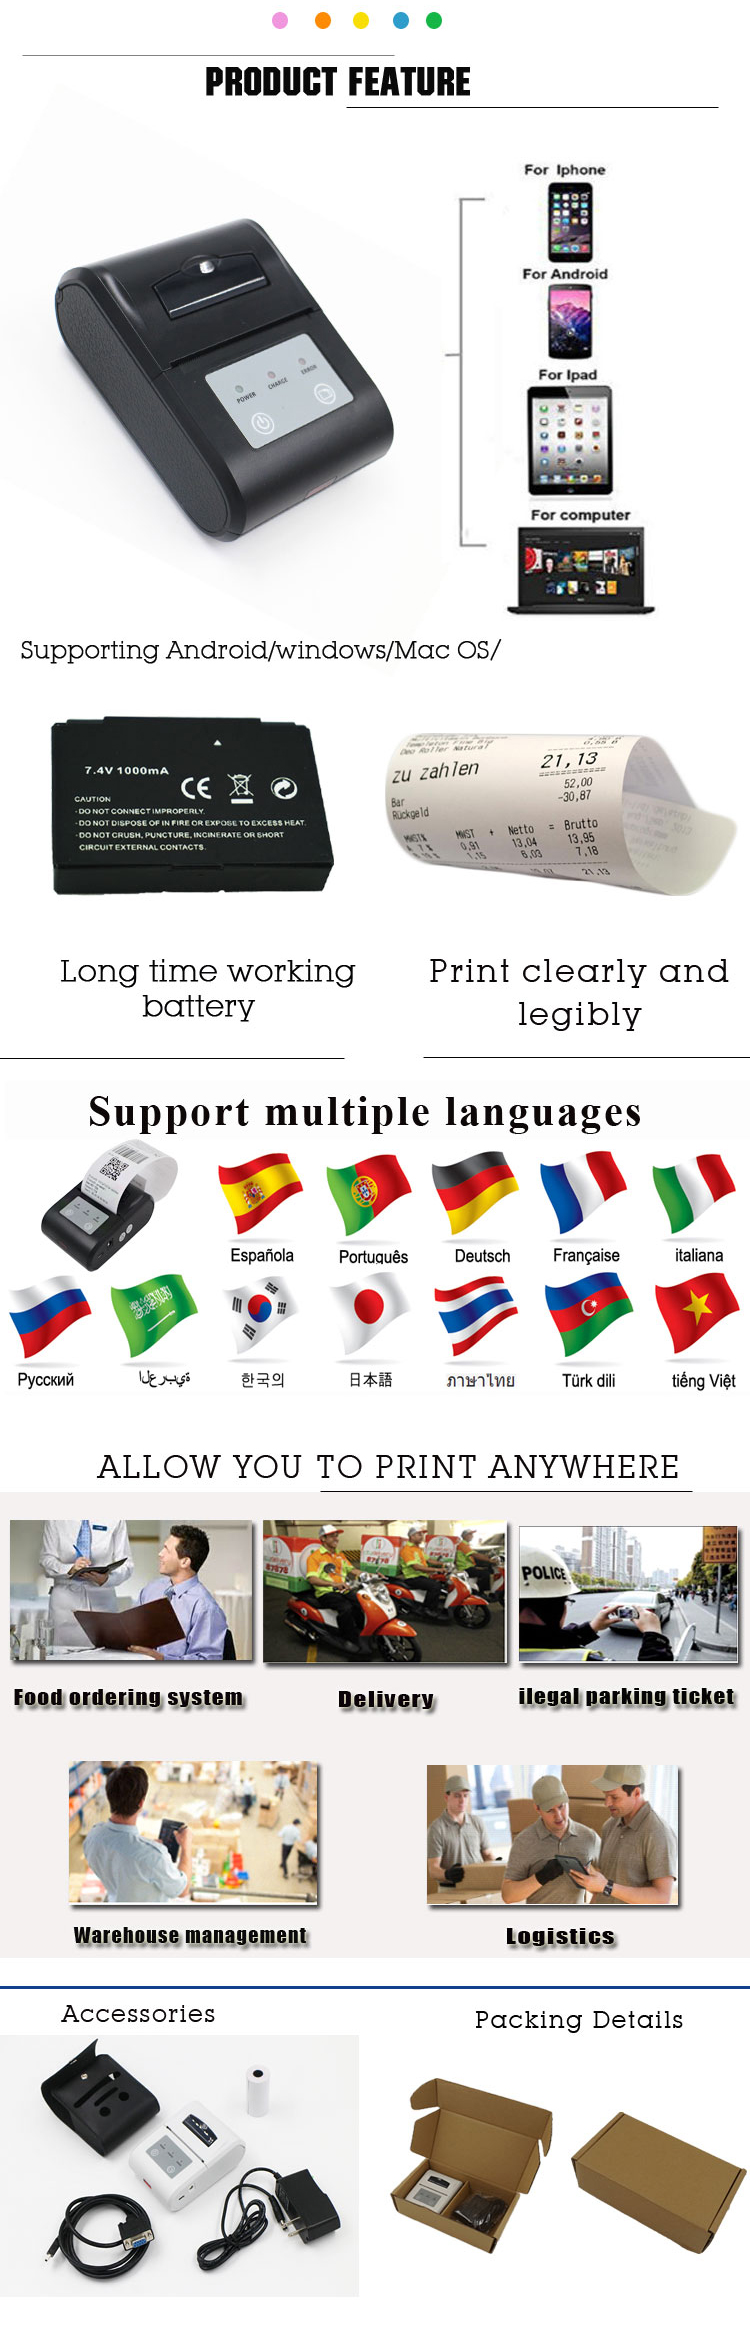 Android Bluetooth Wireless 58mm Portable Thermal Printer Support Esc/pos  Commands - Buy Android Bluetooth Printer,Portable Bluetooth  Printer,Portable